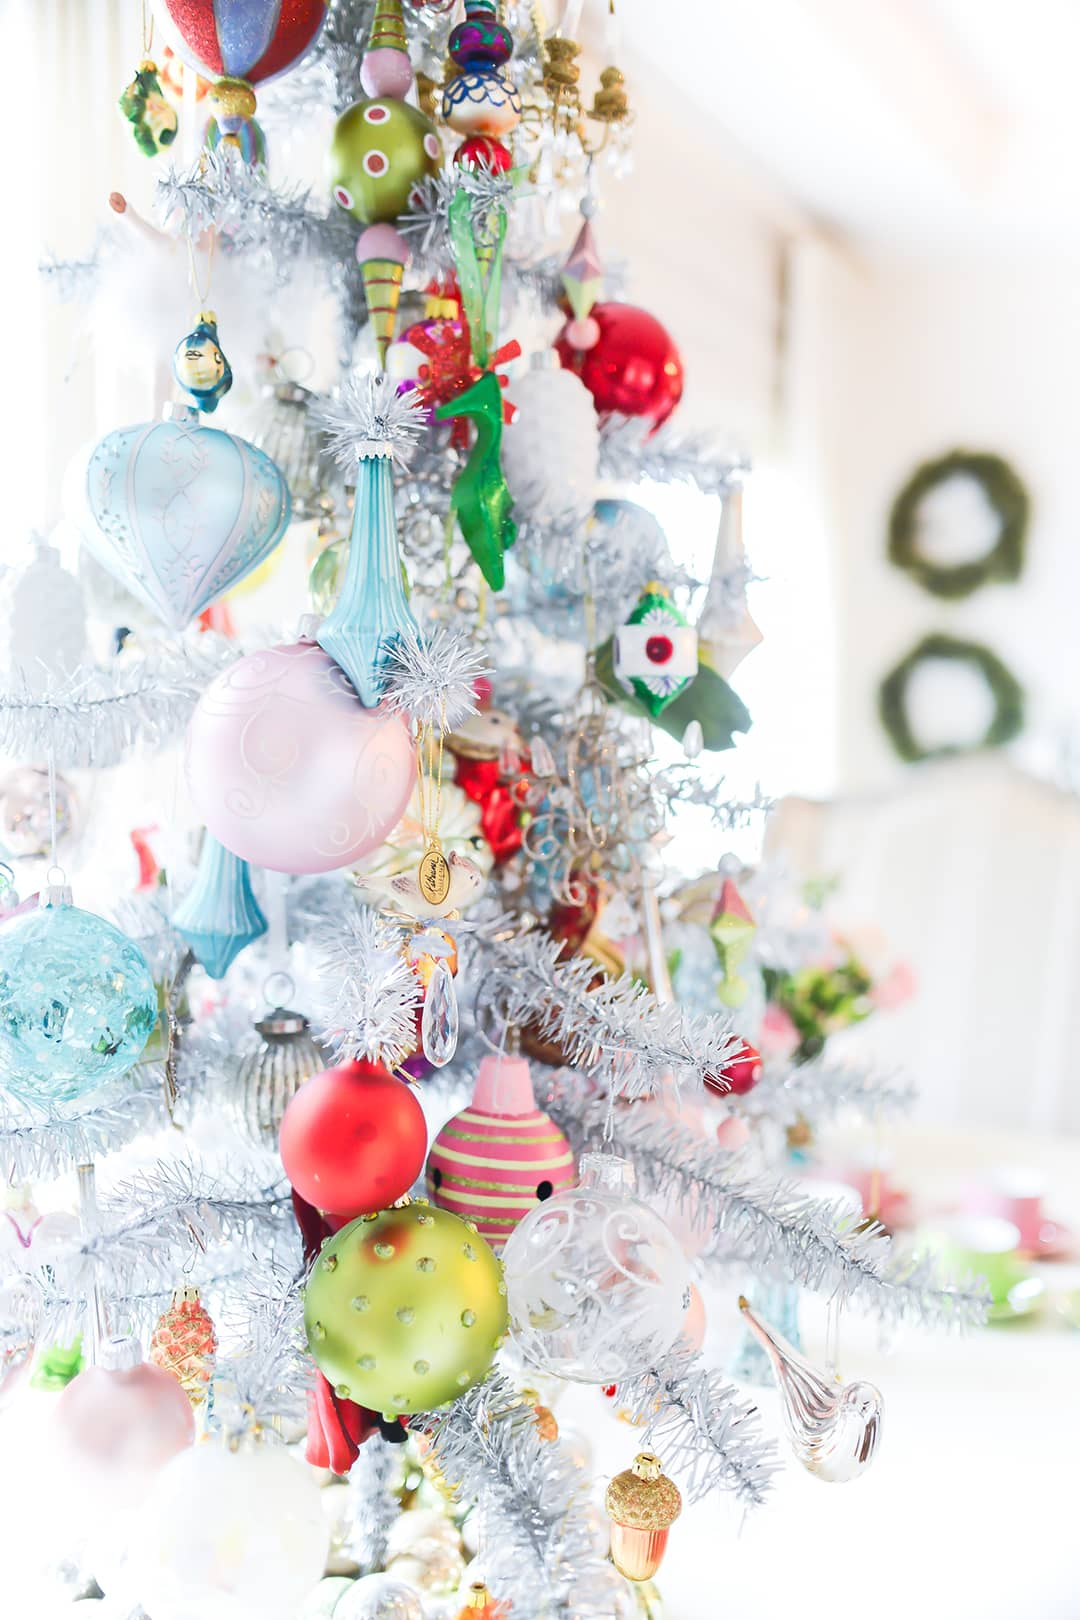 Close up image of heavily flocked tree adorned with colourful Christmas ornaments and bobbles in hot pin, lime green, pale pink, turquoise and gold.